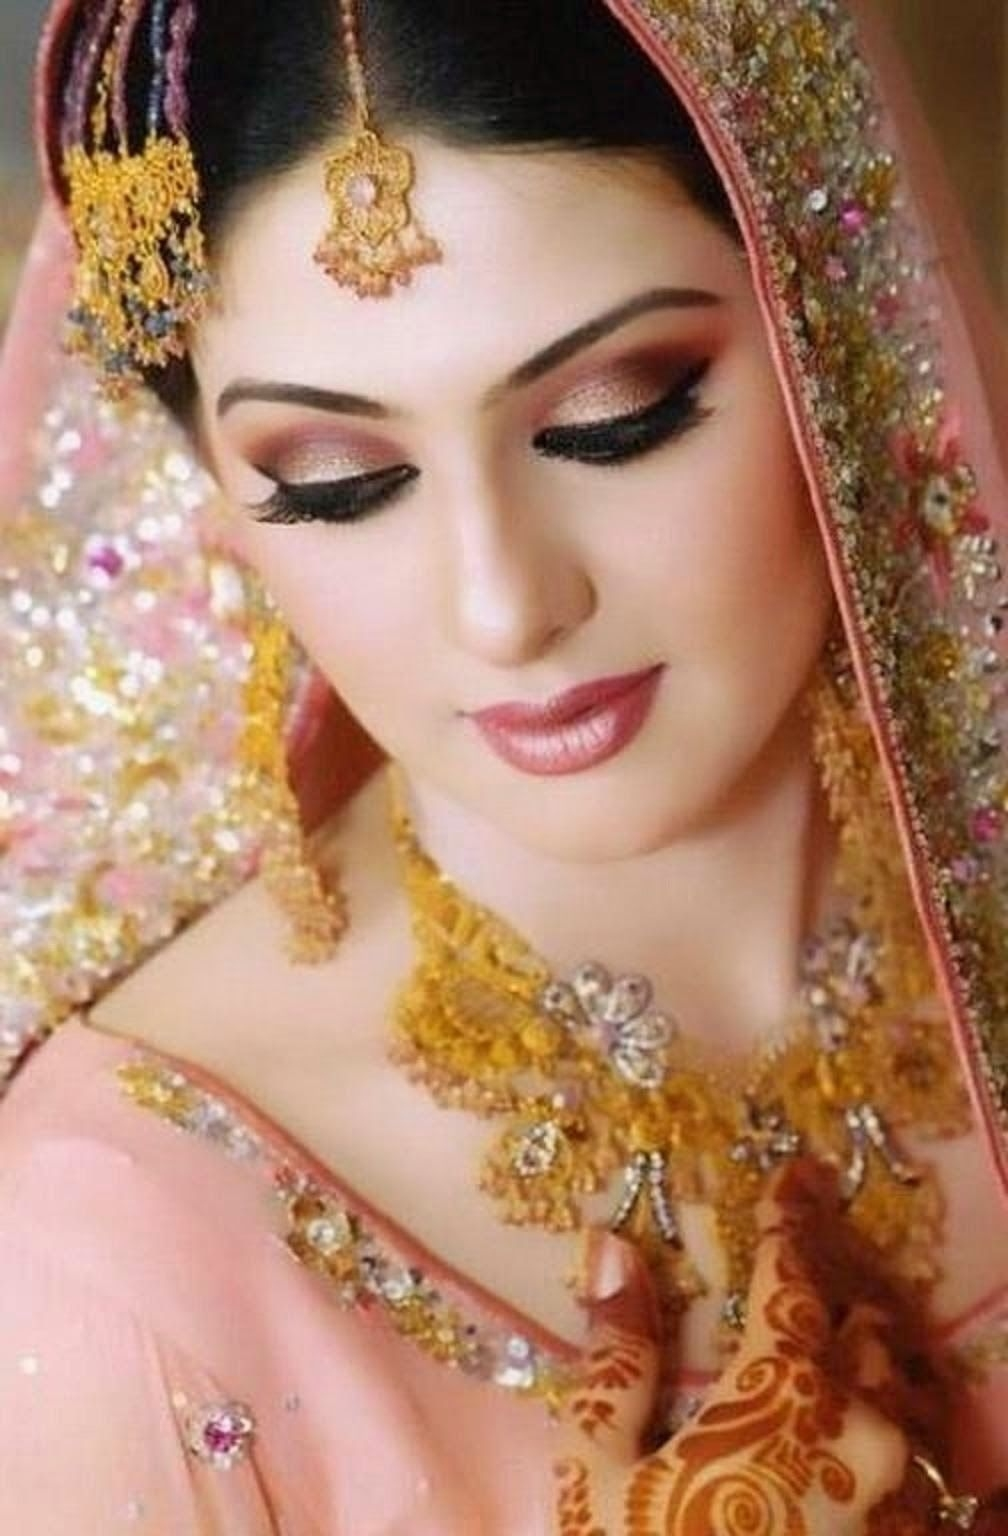 Dulhan Makeup Ideas 2014 For Girls Hd Wallpapers Free Download intended for Pakistani Bridal Makeup Pics 2014